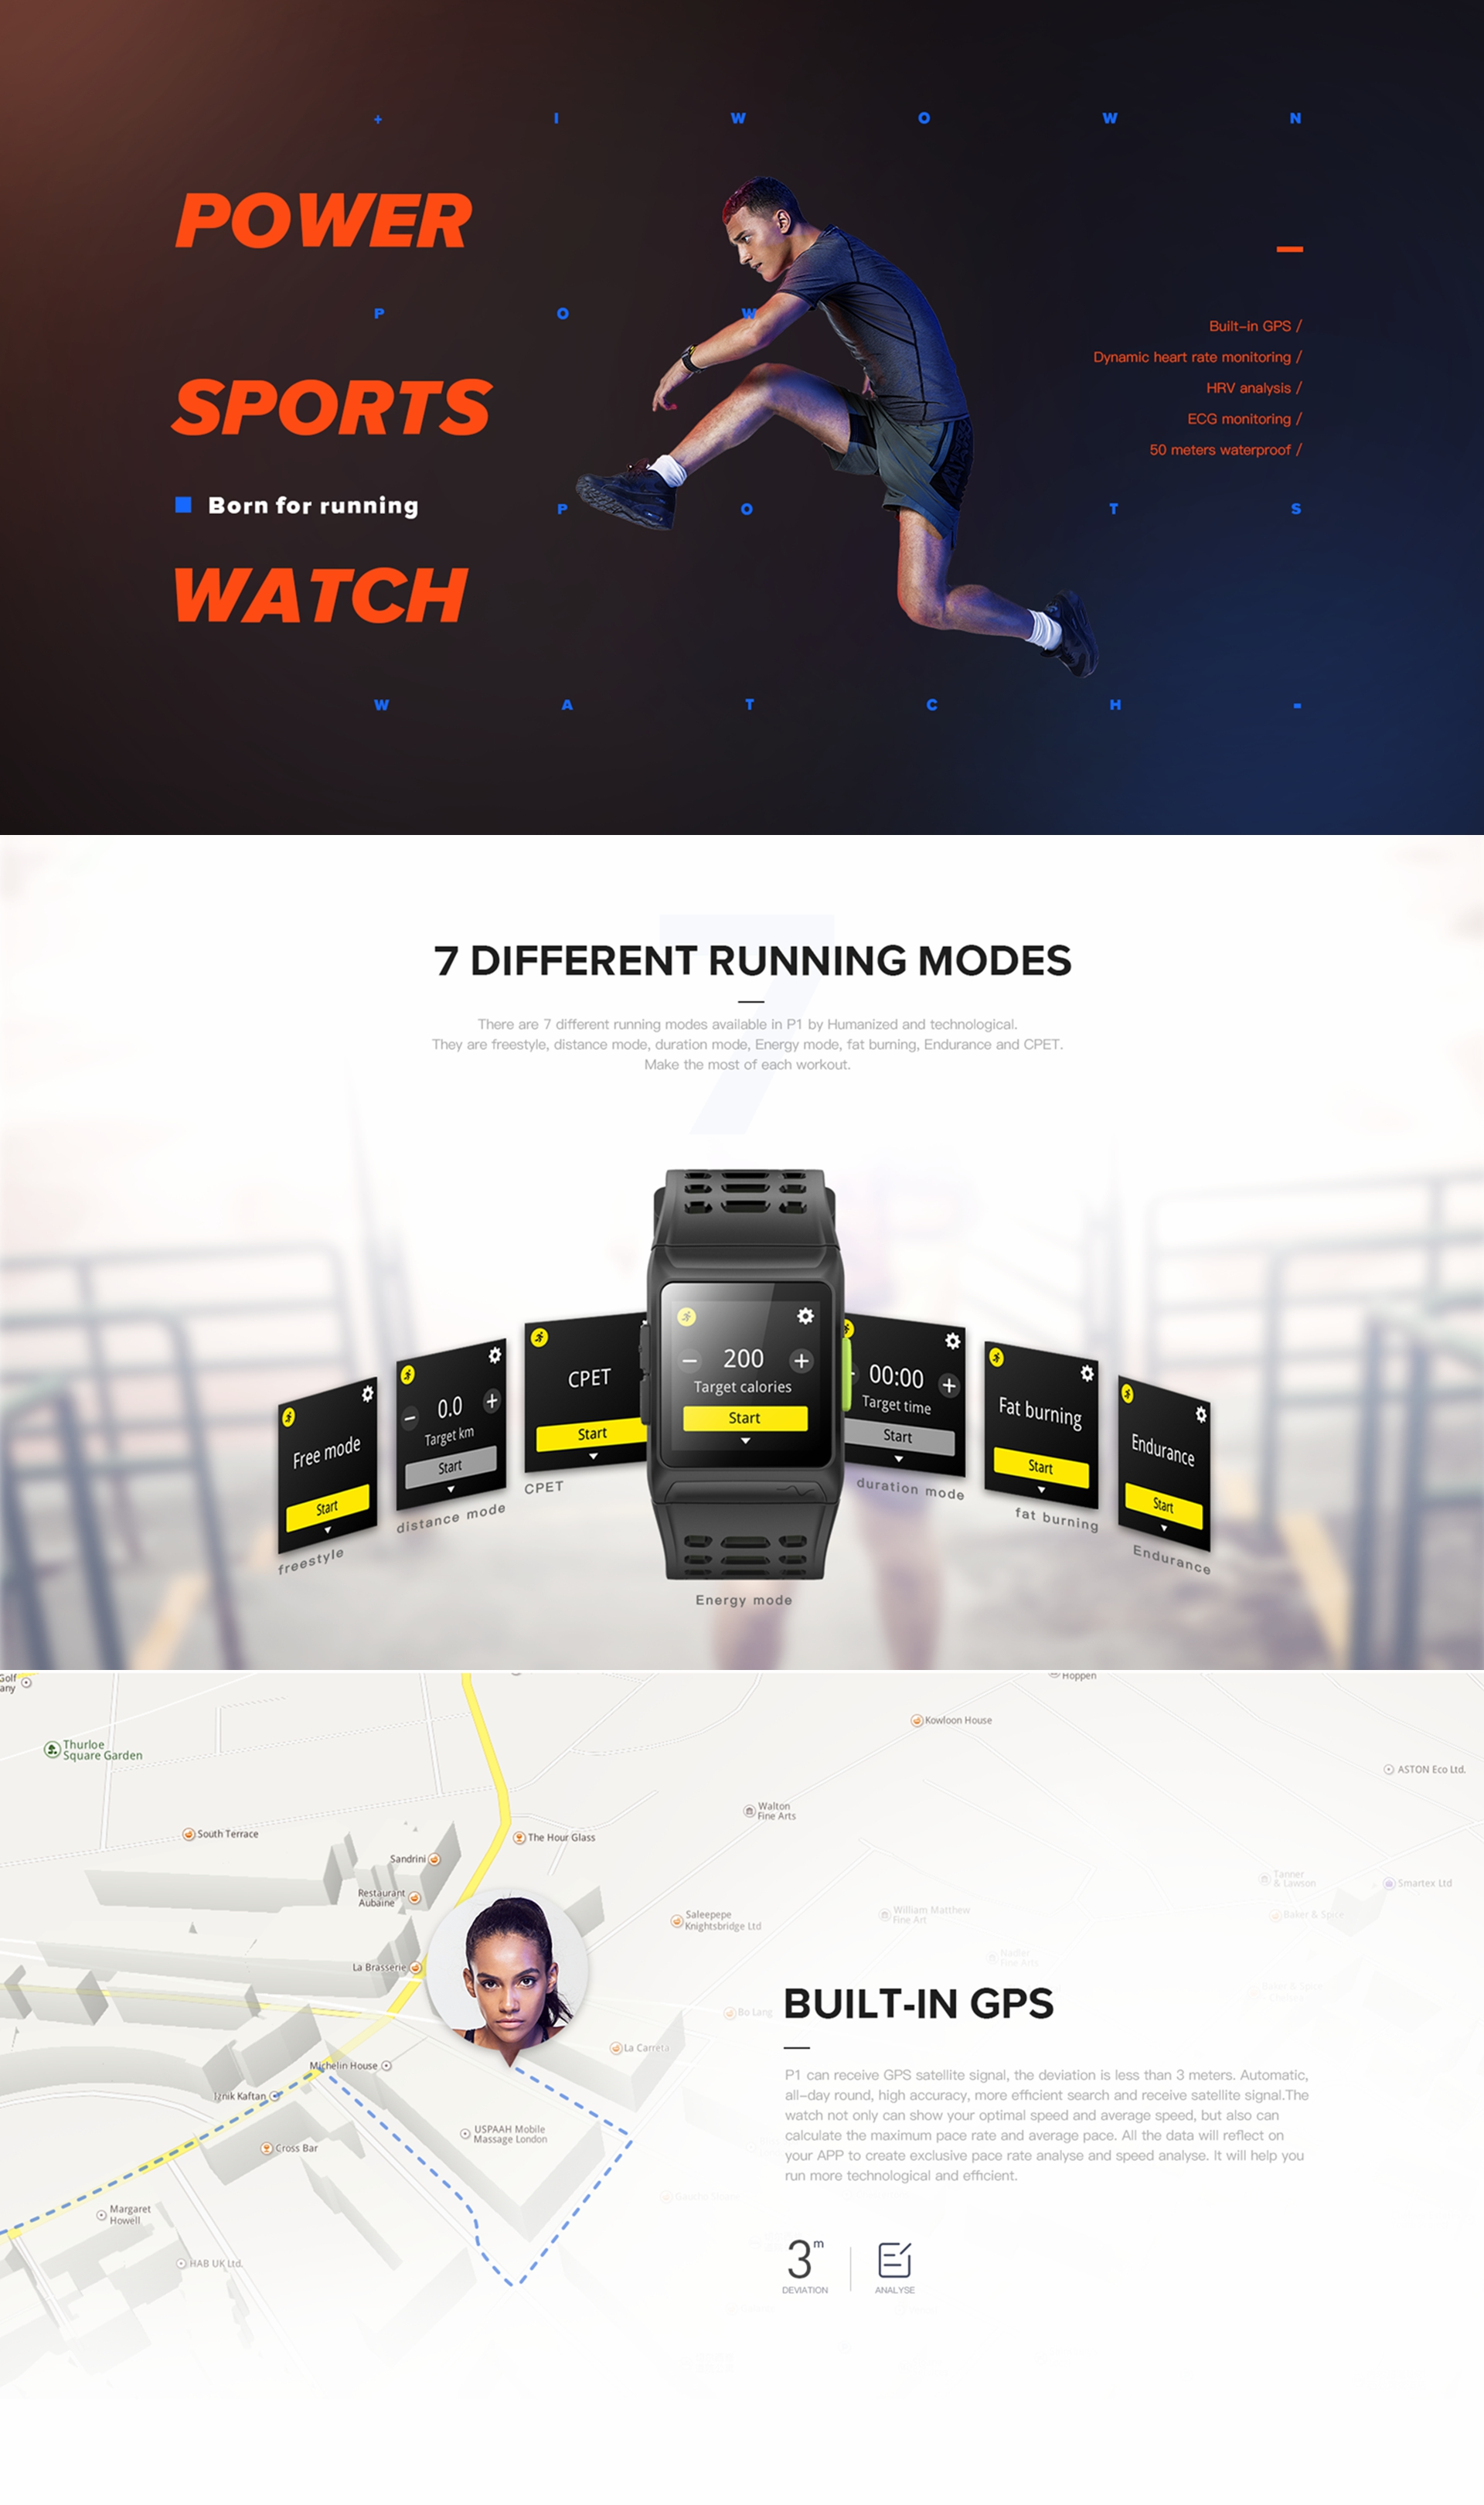 IWOWN P1 1.3inch Color Screen Heart Rate Monitor GPS Sport Fitness Tracker bluetooth Smart Wristband